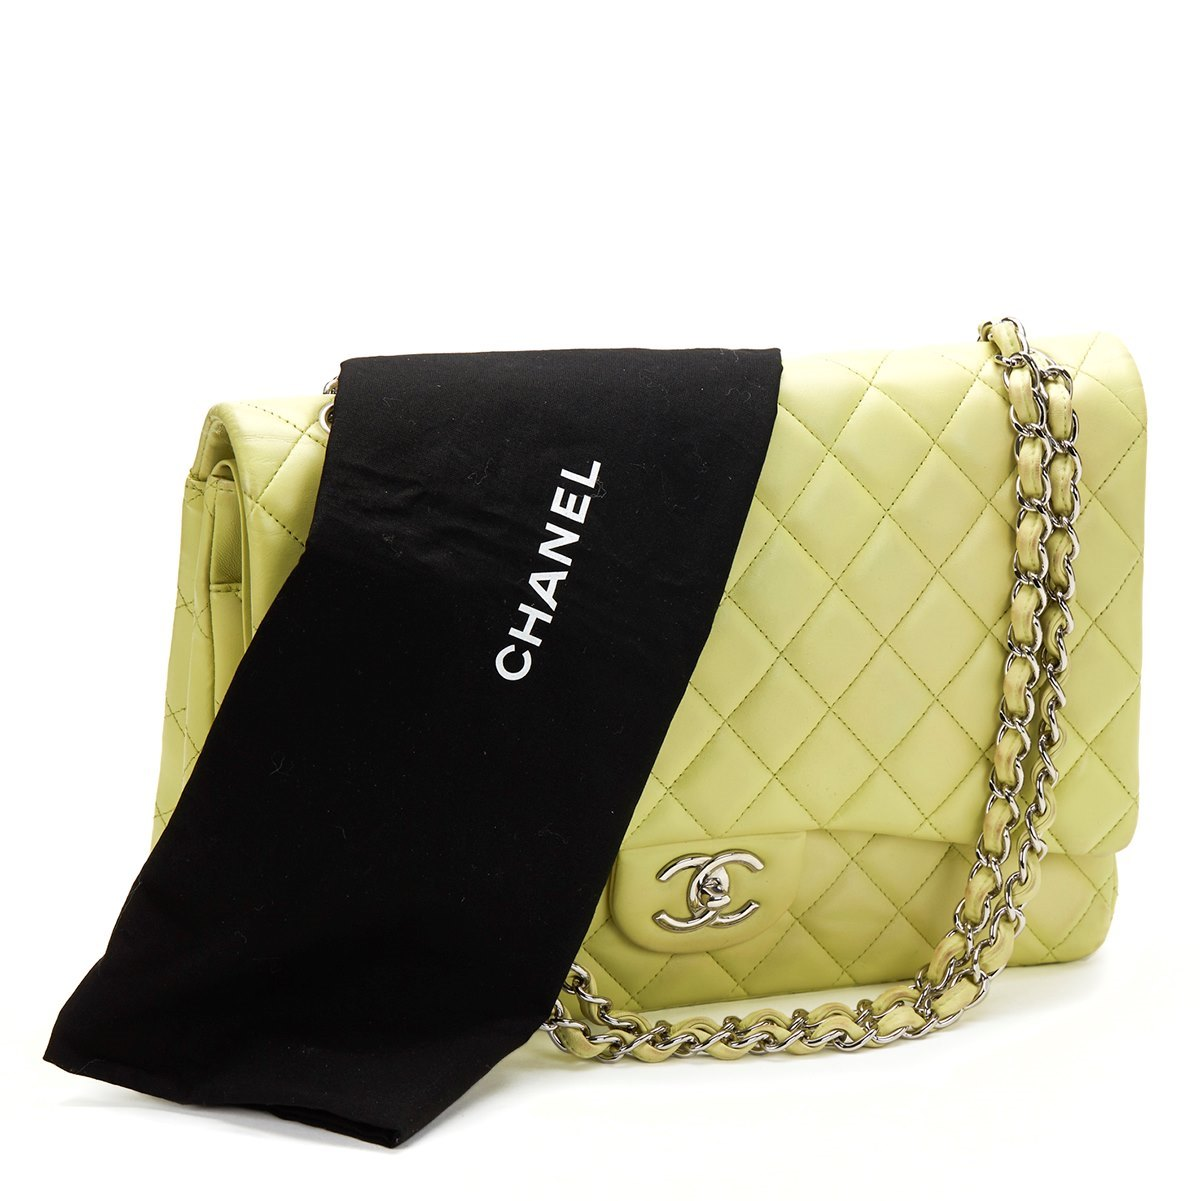 chanel maxi classic double flap bag 2011 hb375 second hand handbags. Black Bedroom Furniture Sets. Home Design Ideas